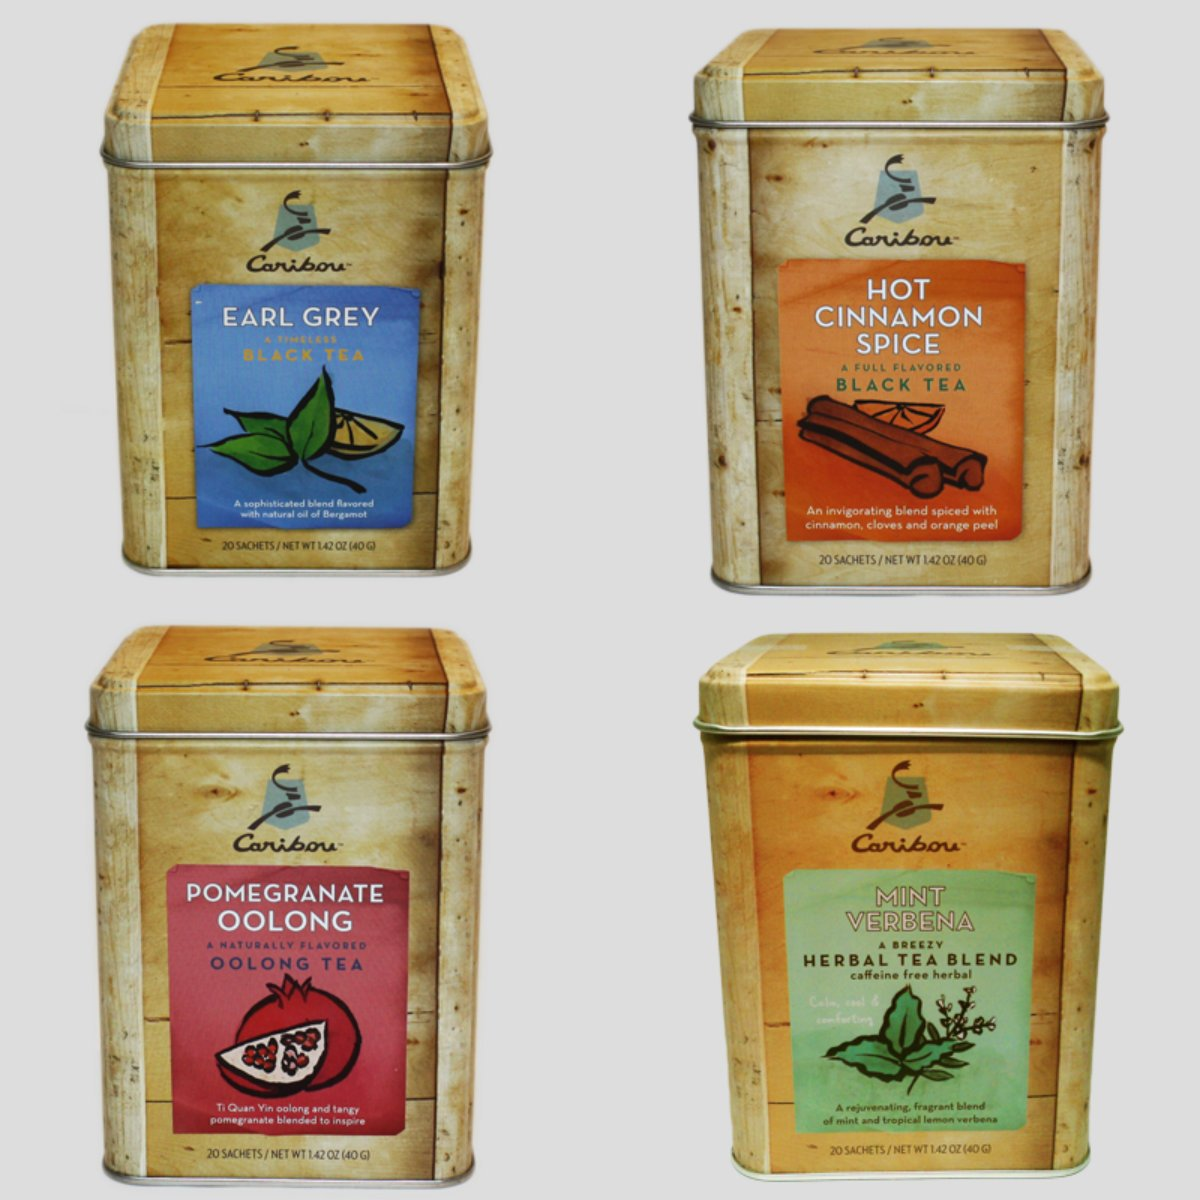 Caribou Tea Tins 20 - Sachets per Tin (4 Flavor Tea Sampler) by Caribou Coffee